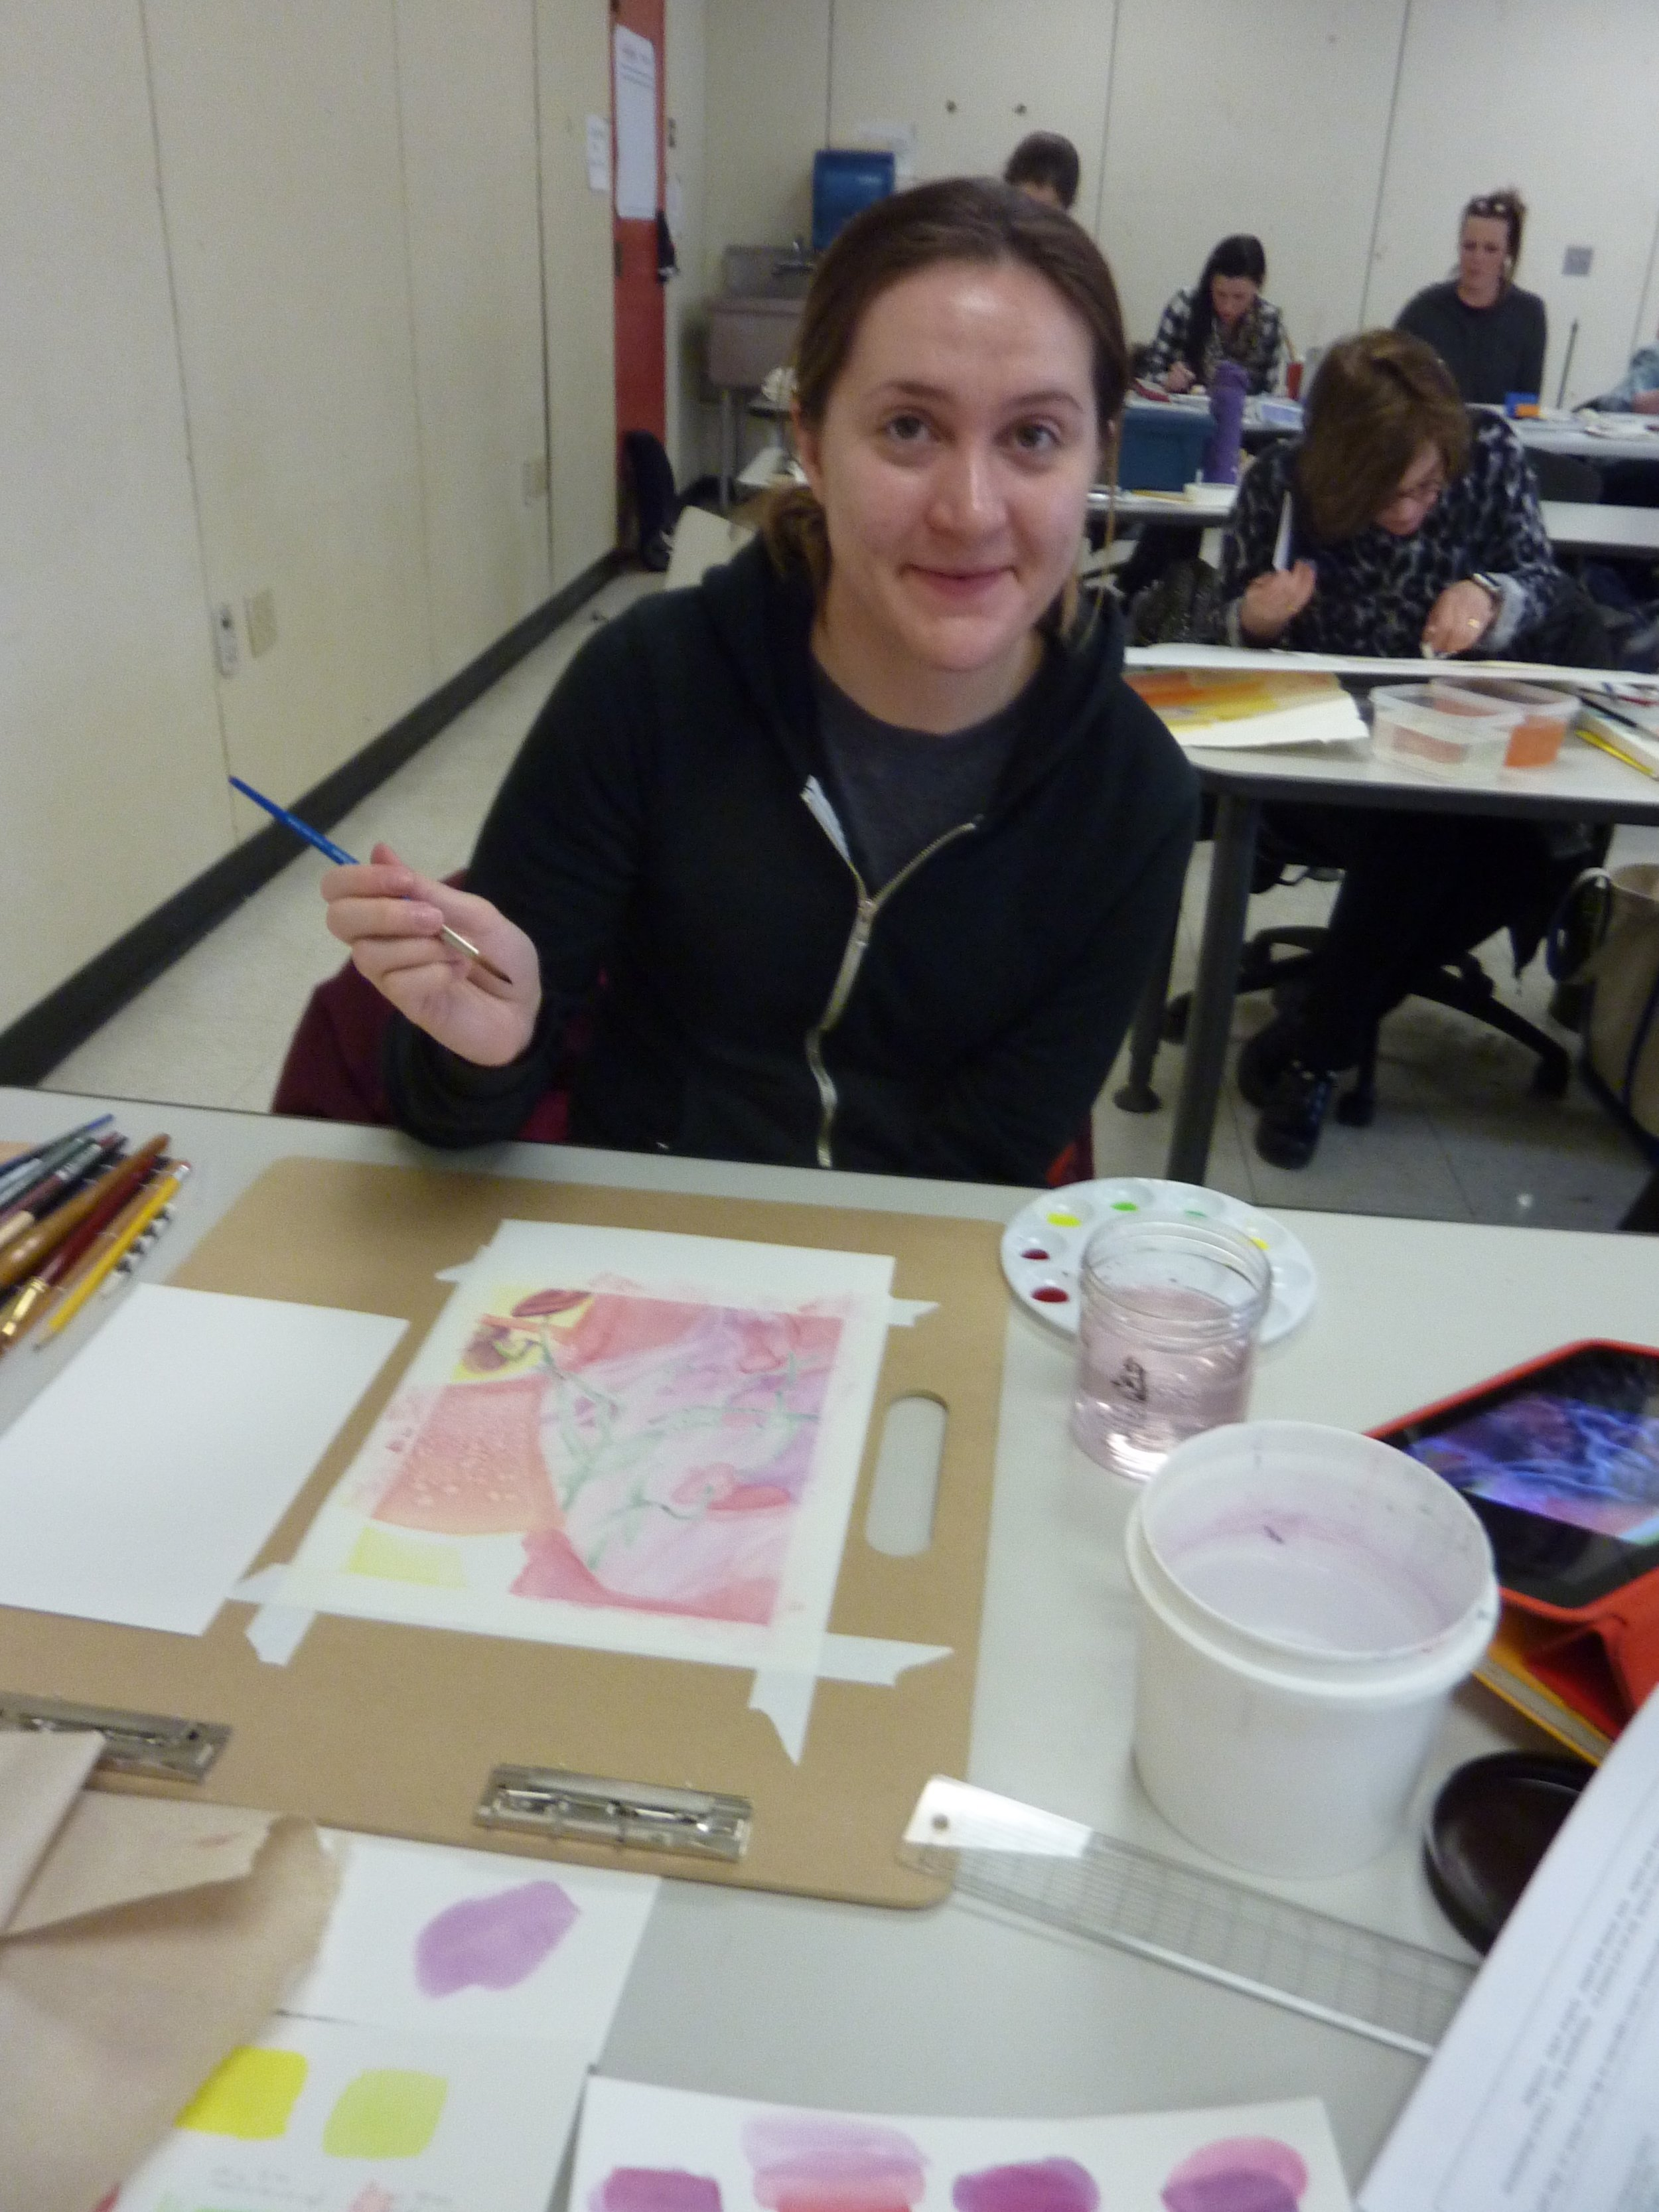 Rebecca used salt to create texture in her painting inspired by an extreme close-up photo of a flower.